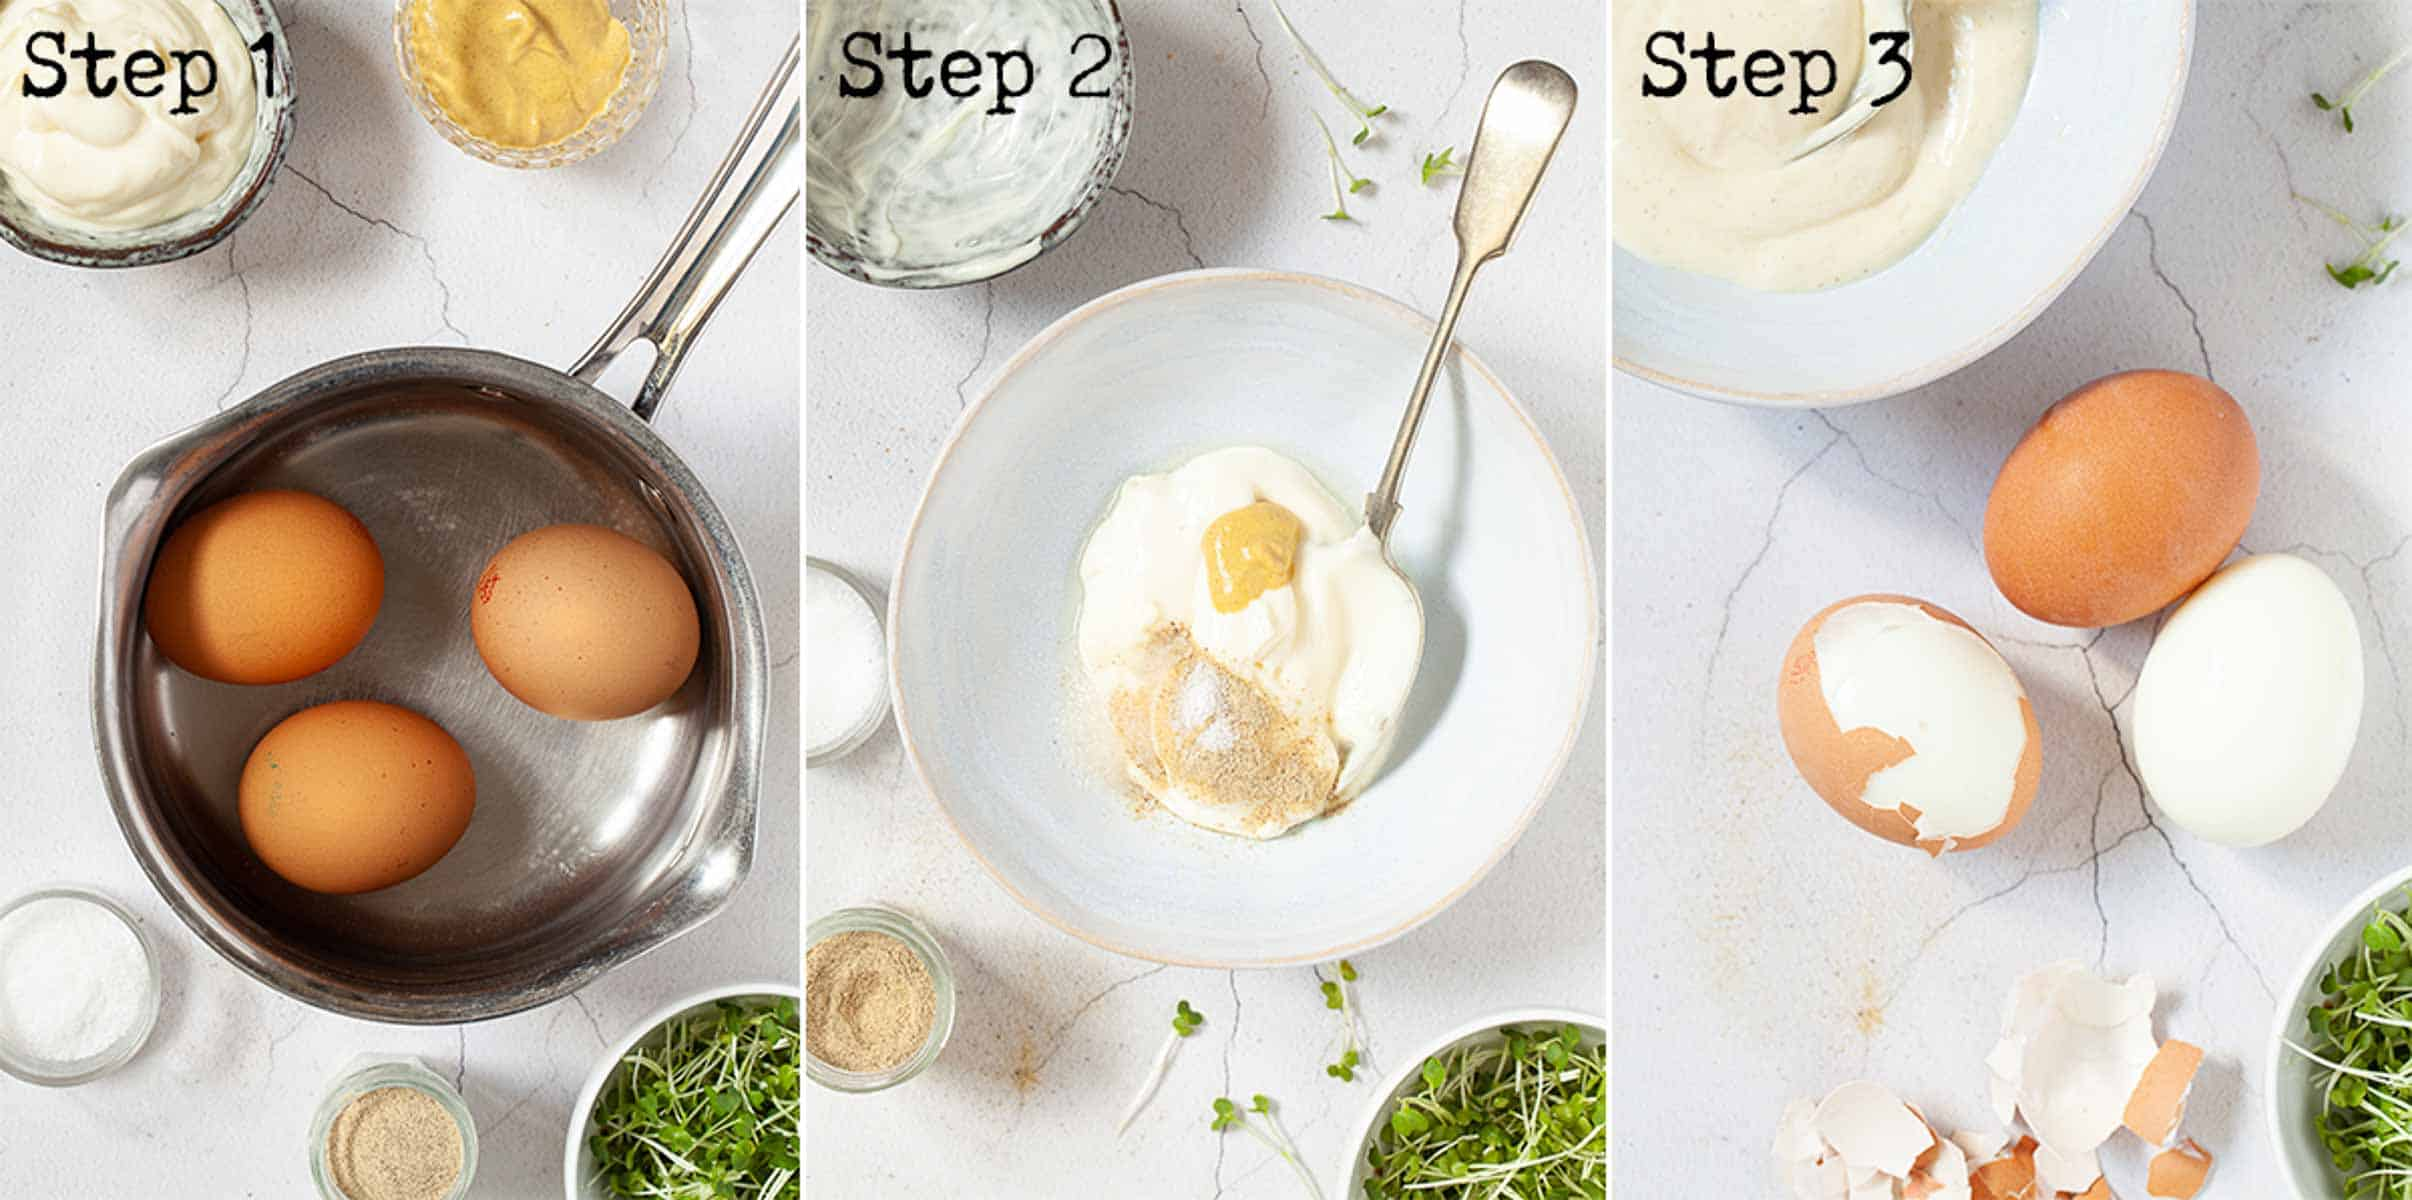 Collage of images showing eggs being boiled and shelled